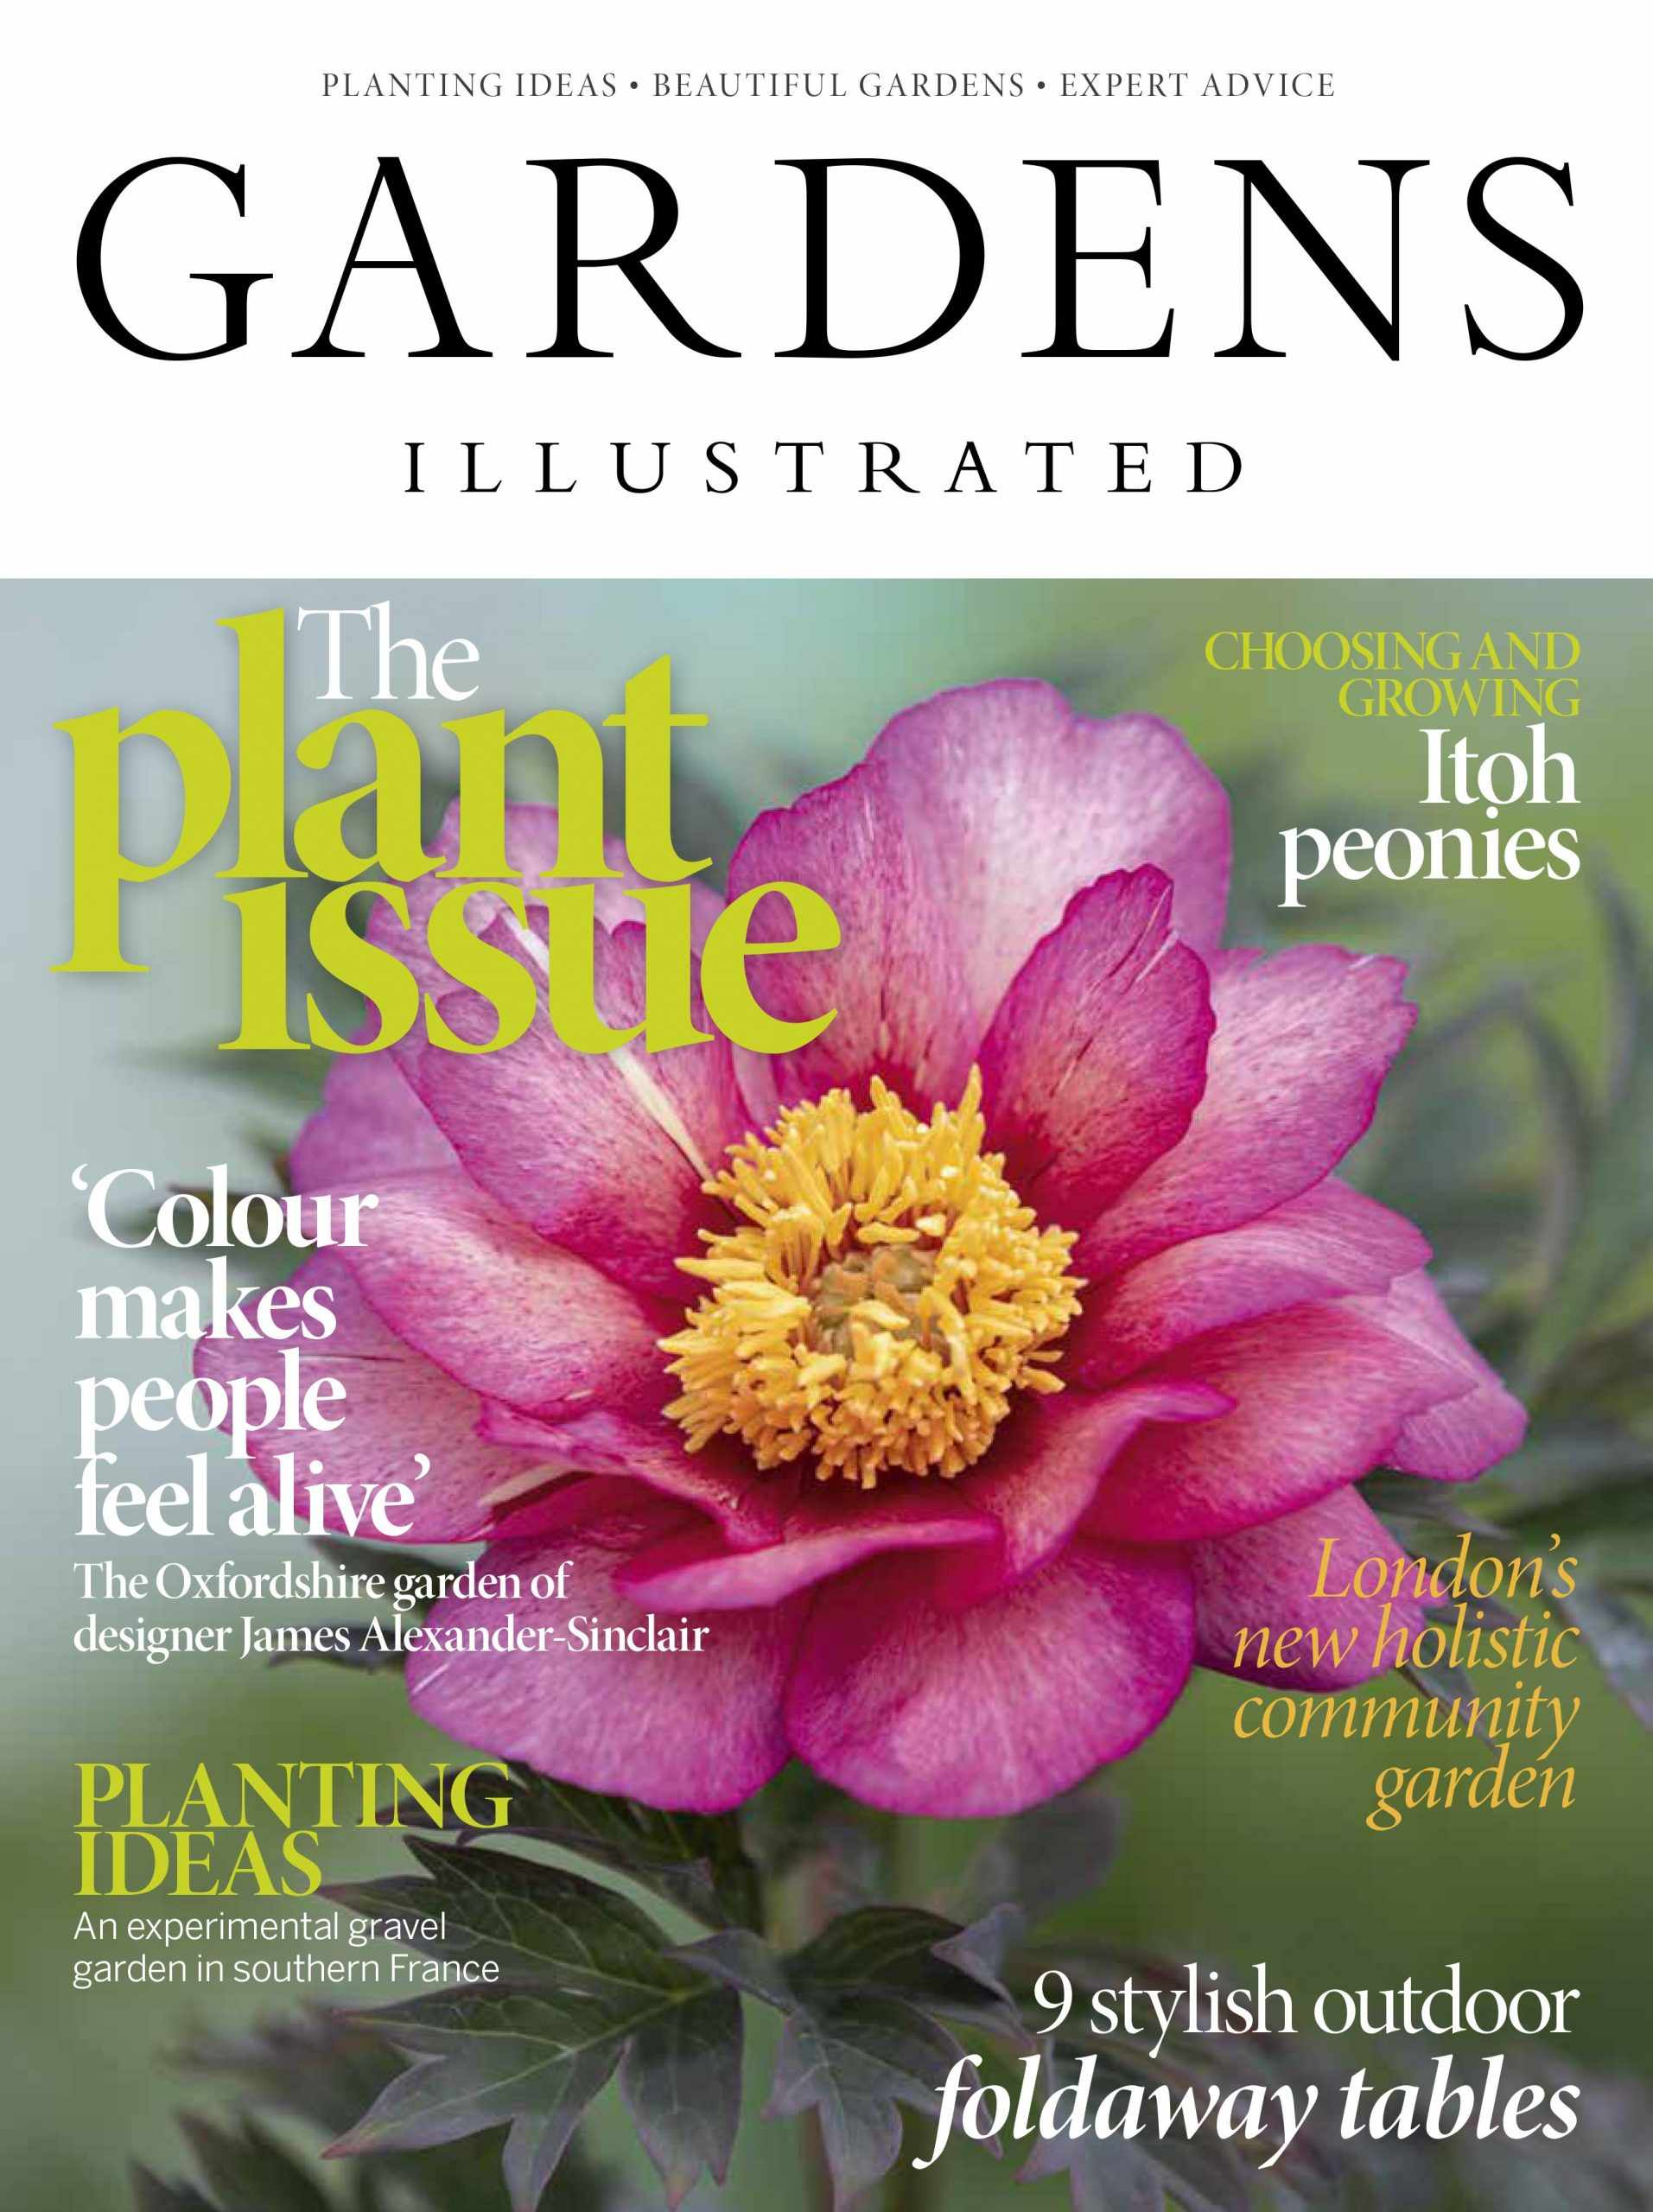 Special Issue Gardens Illustrated 2020